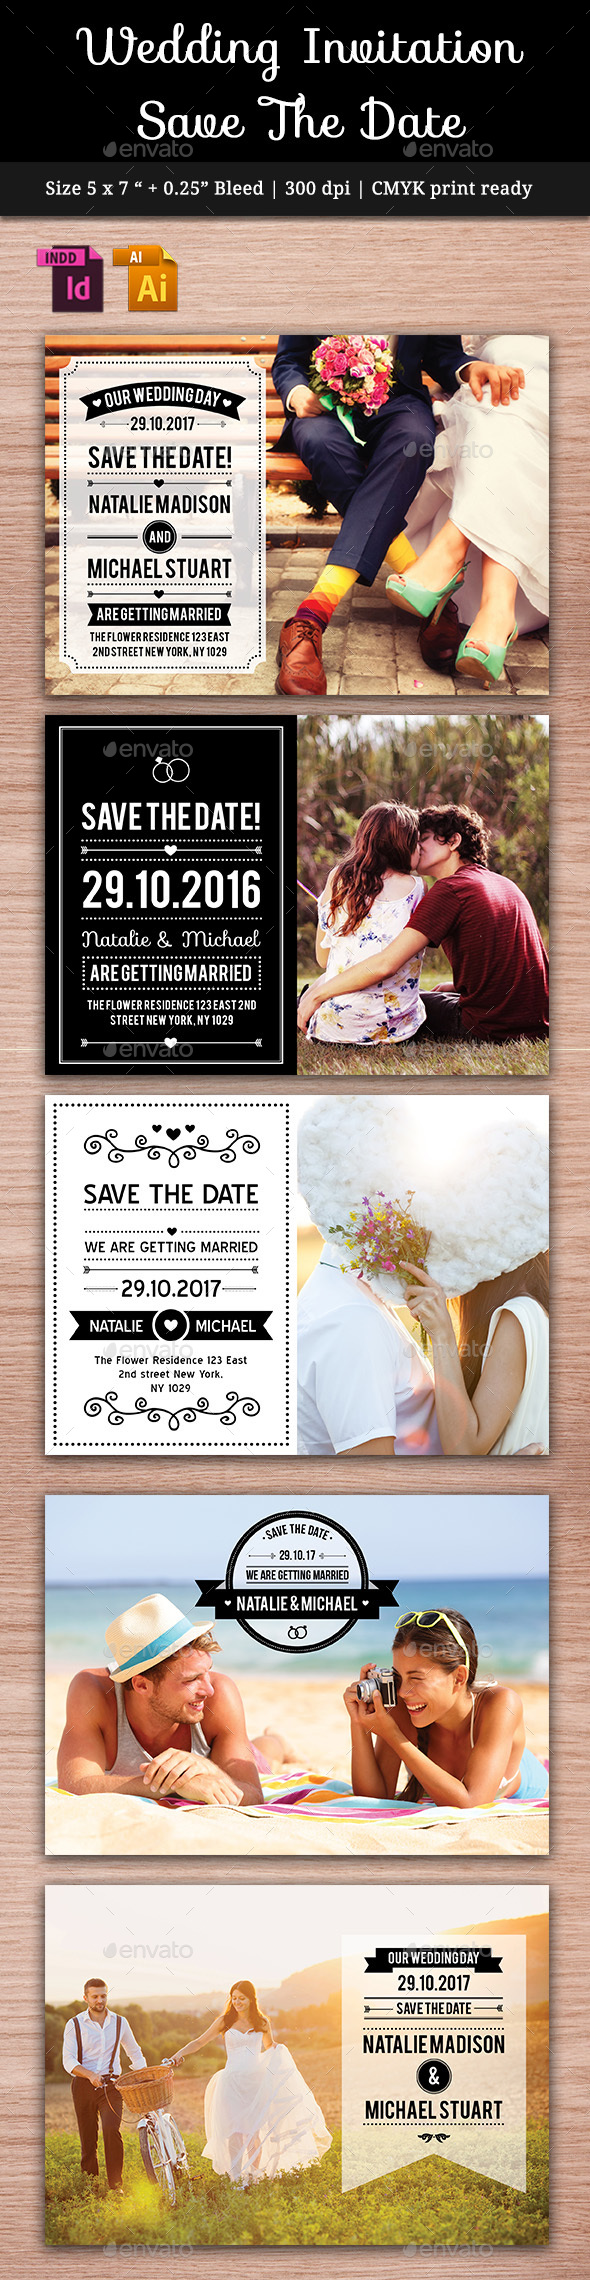 Wedding Save The Date Vol. 2